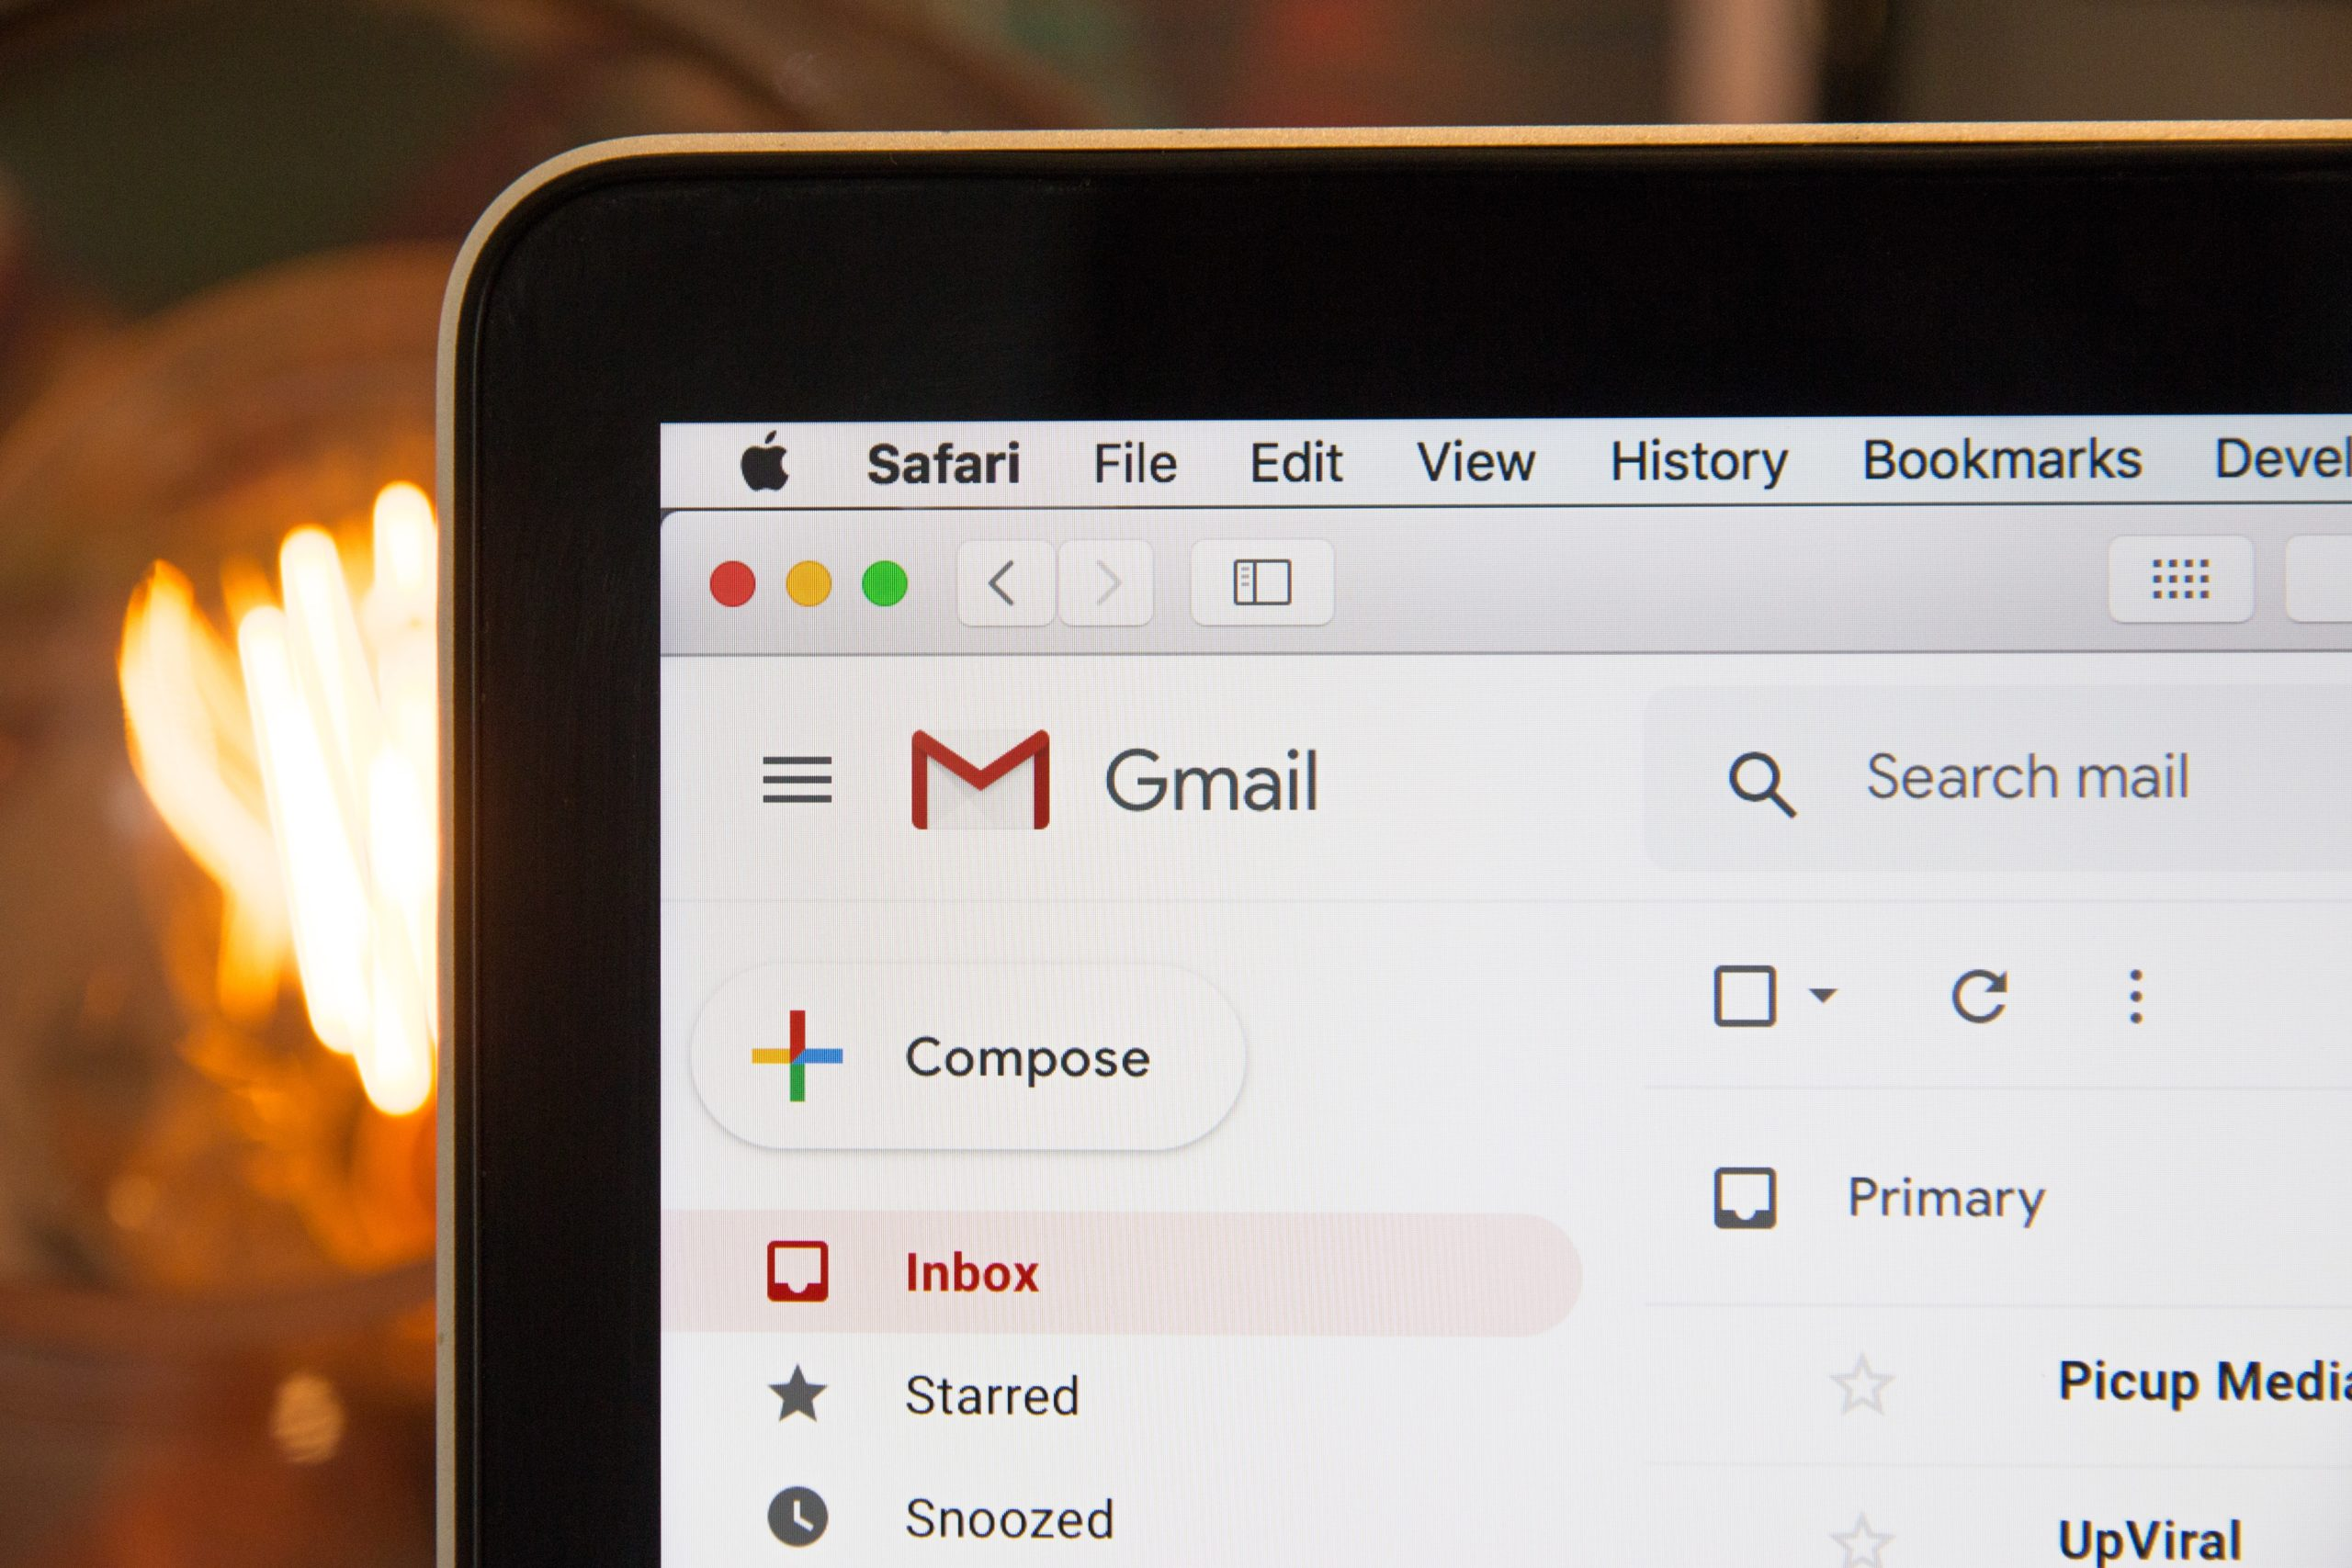 gmail account open to the inbox